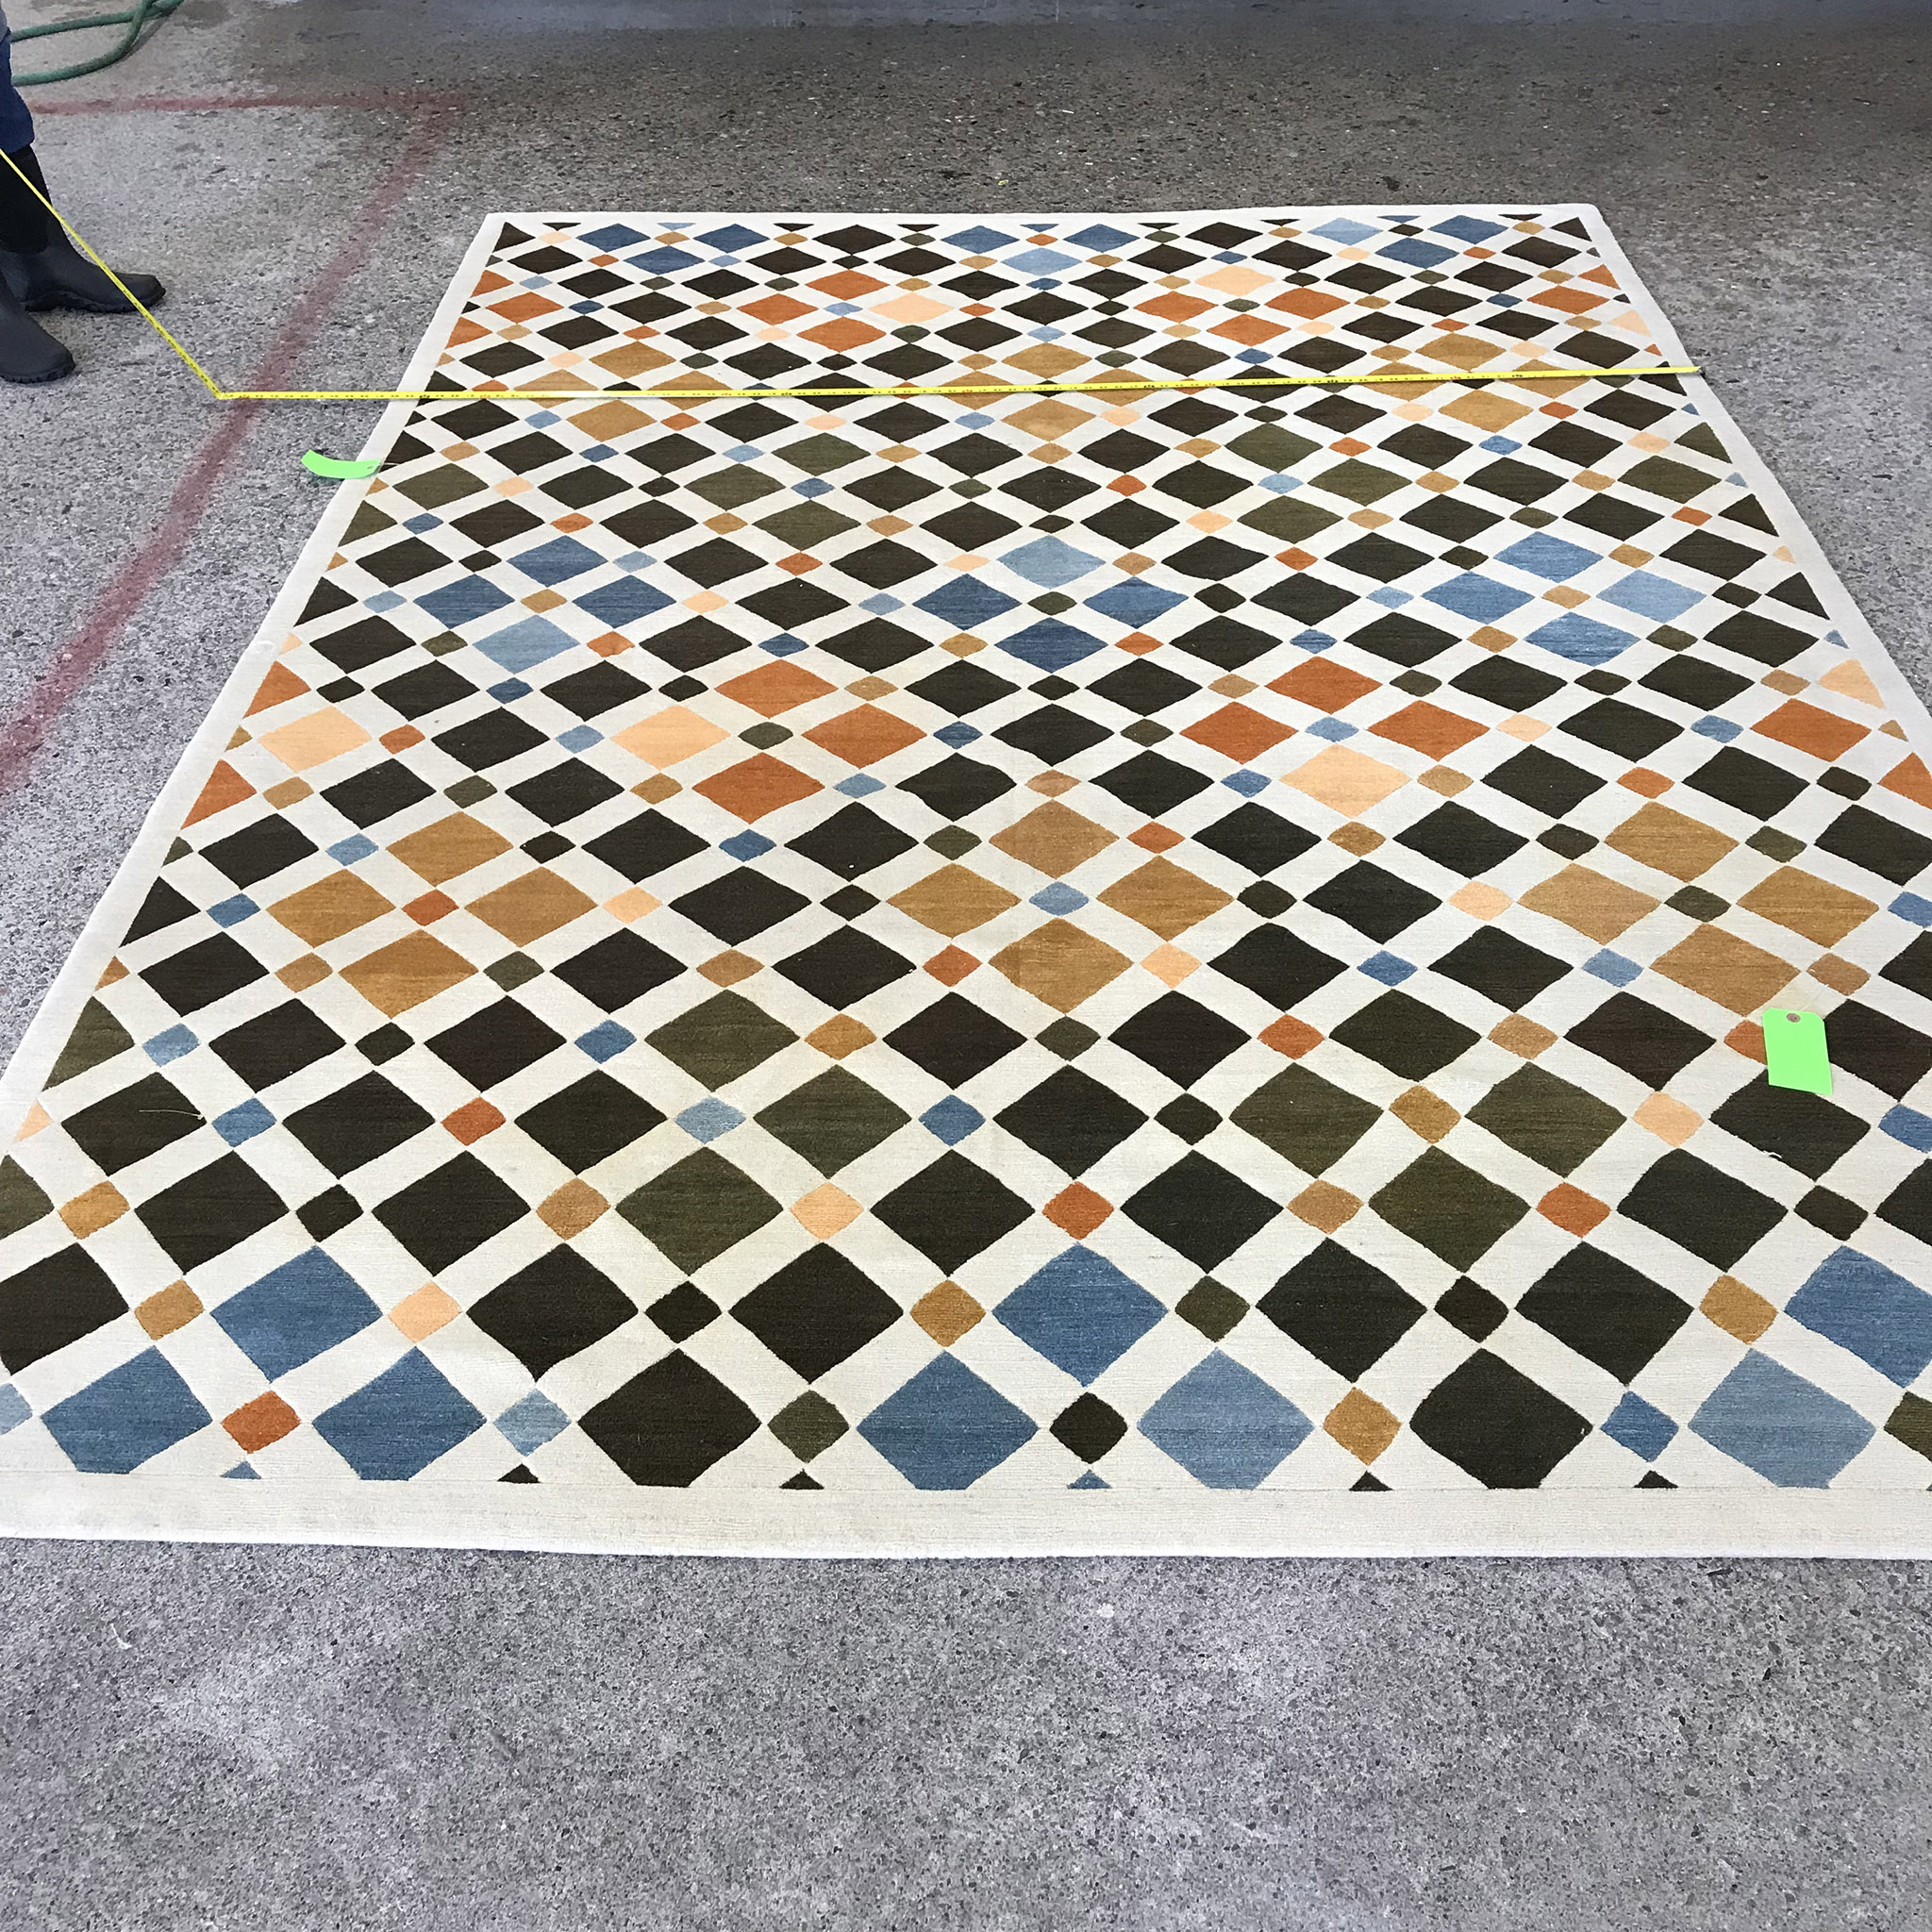 A trusted cleaner will thoroughly assess a rug or carpet prior to cleaning. Here you see a technician measuring the carpet to confirm dimensions and provide documentary information should problems arise. | Image courtesy of Weaver & Loom.